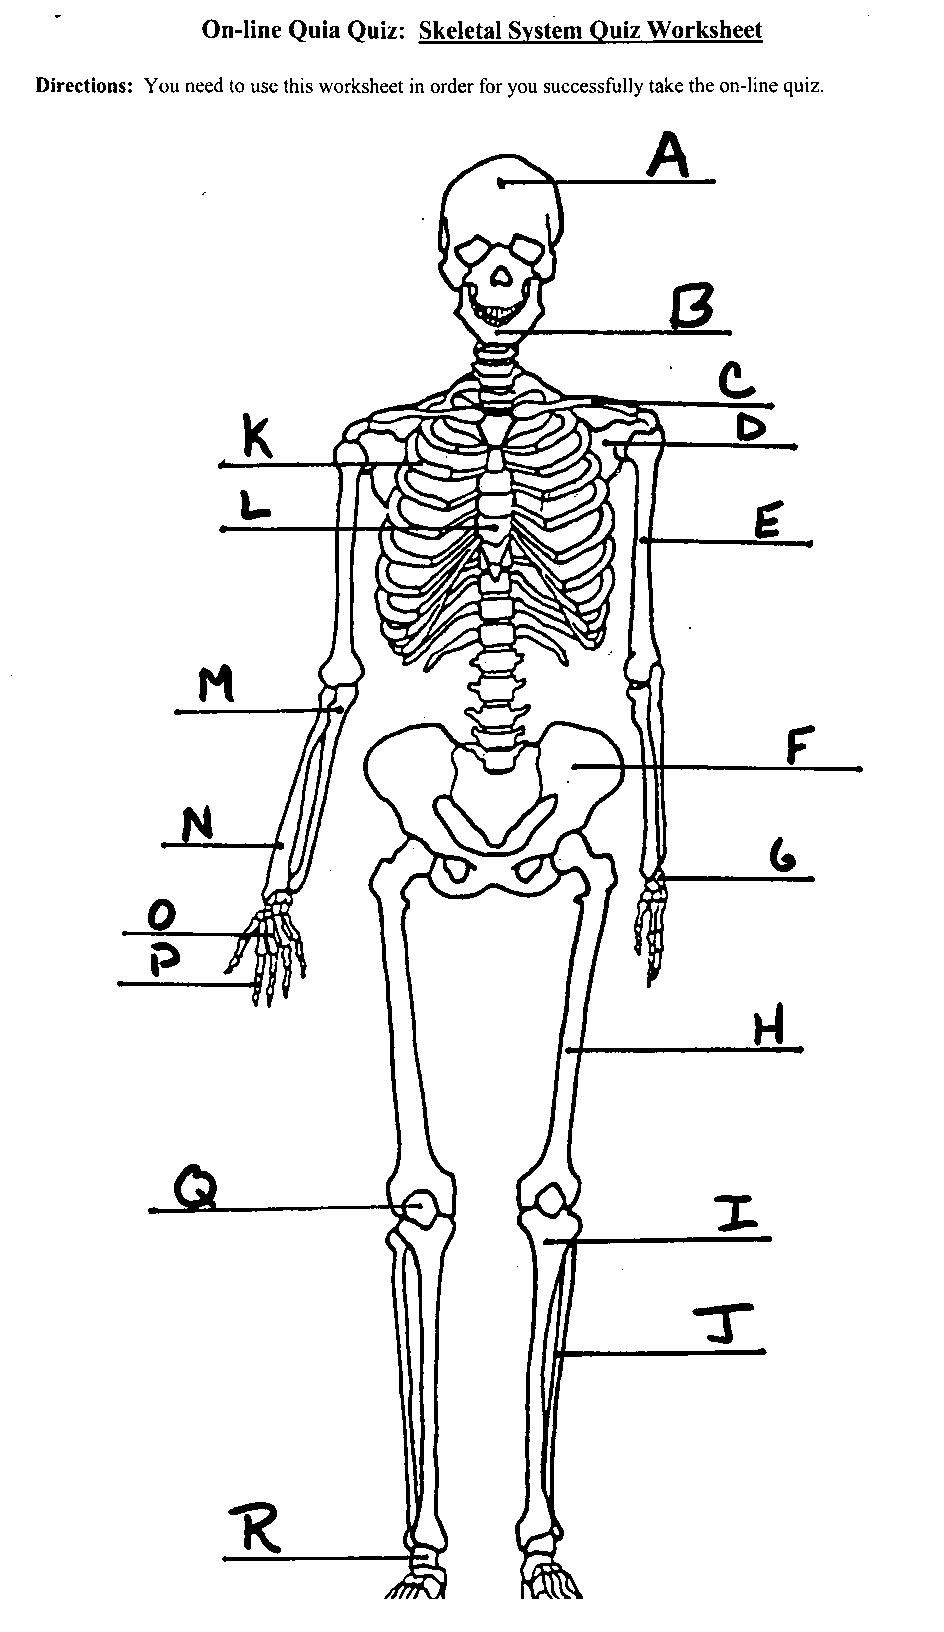 image result for skeletal system labeled